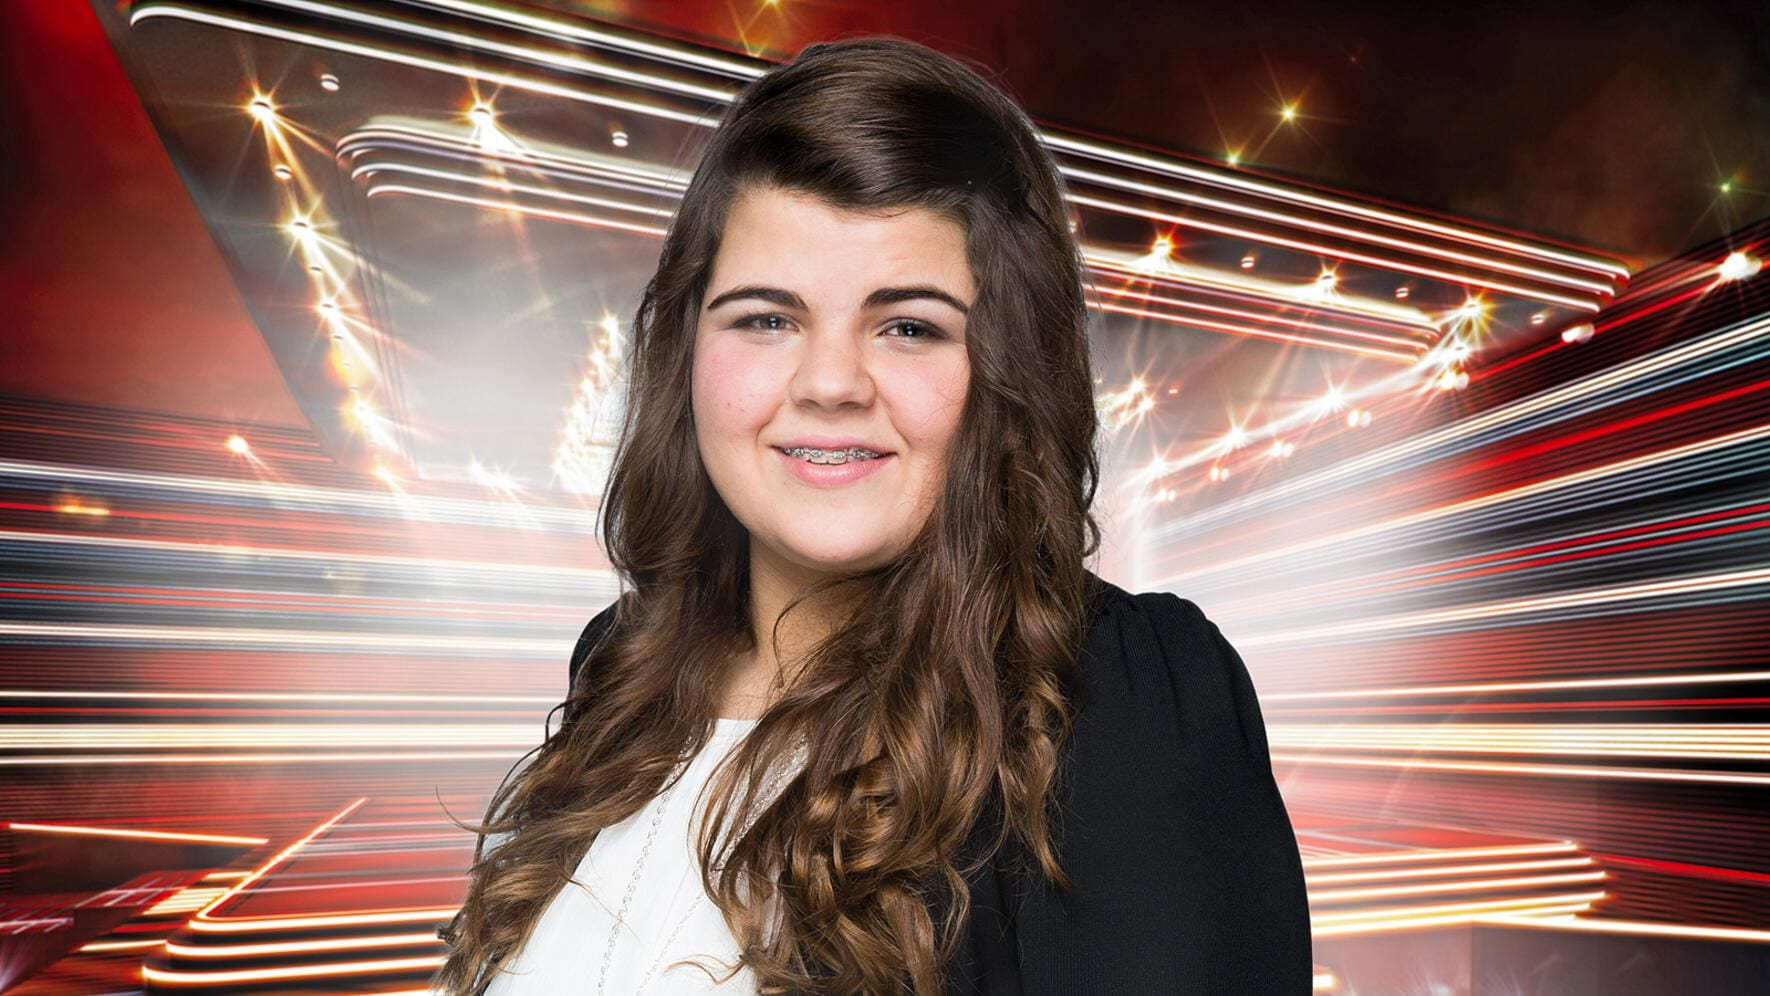 The Voice of Switzerland 2014, Staffel 2, Kandidatin Tiziana Gulino